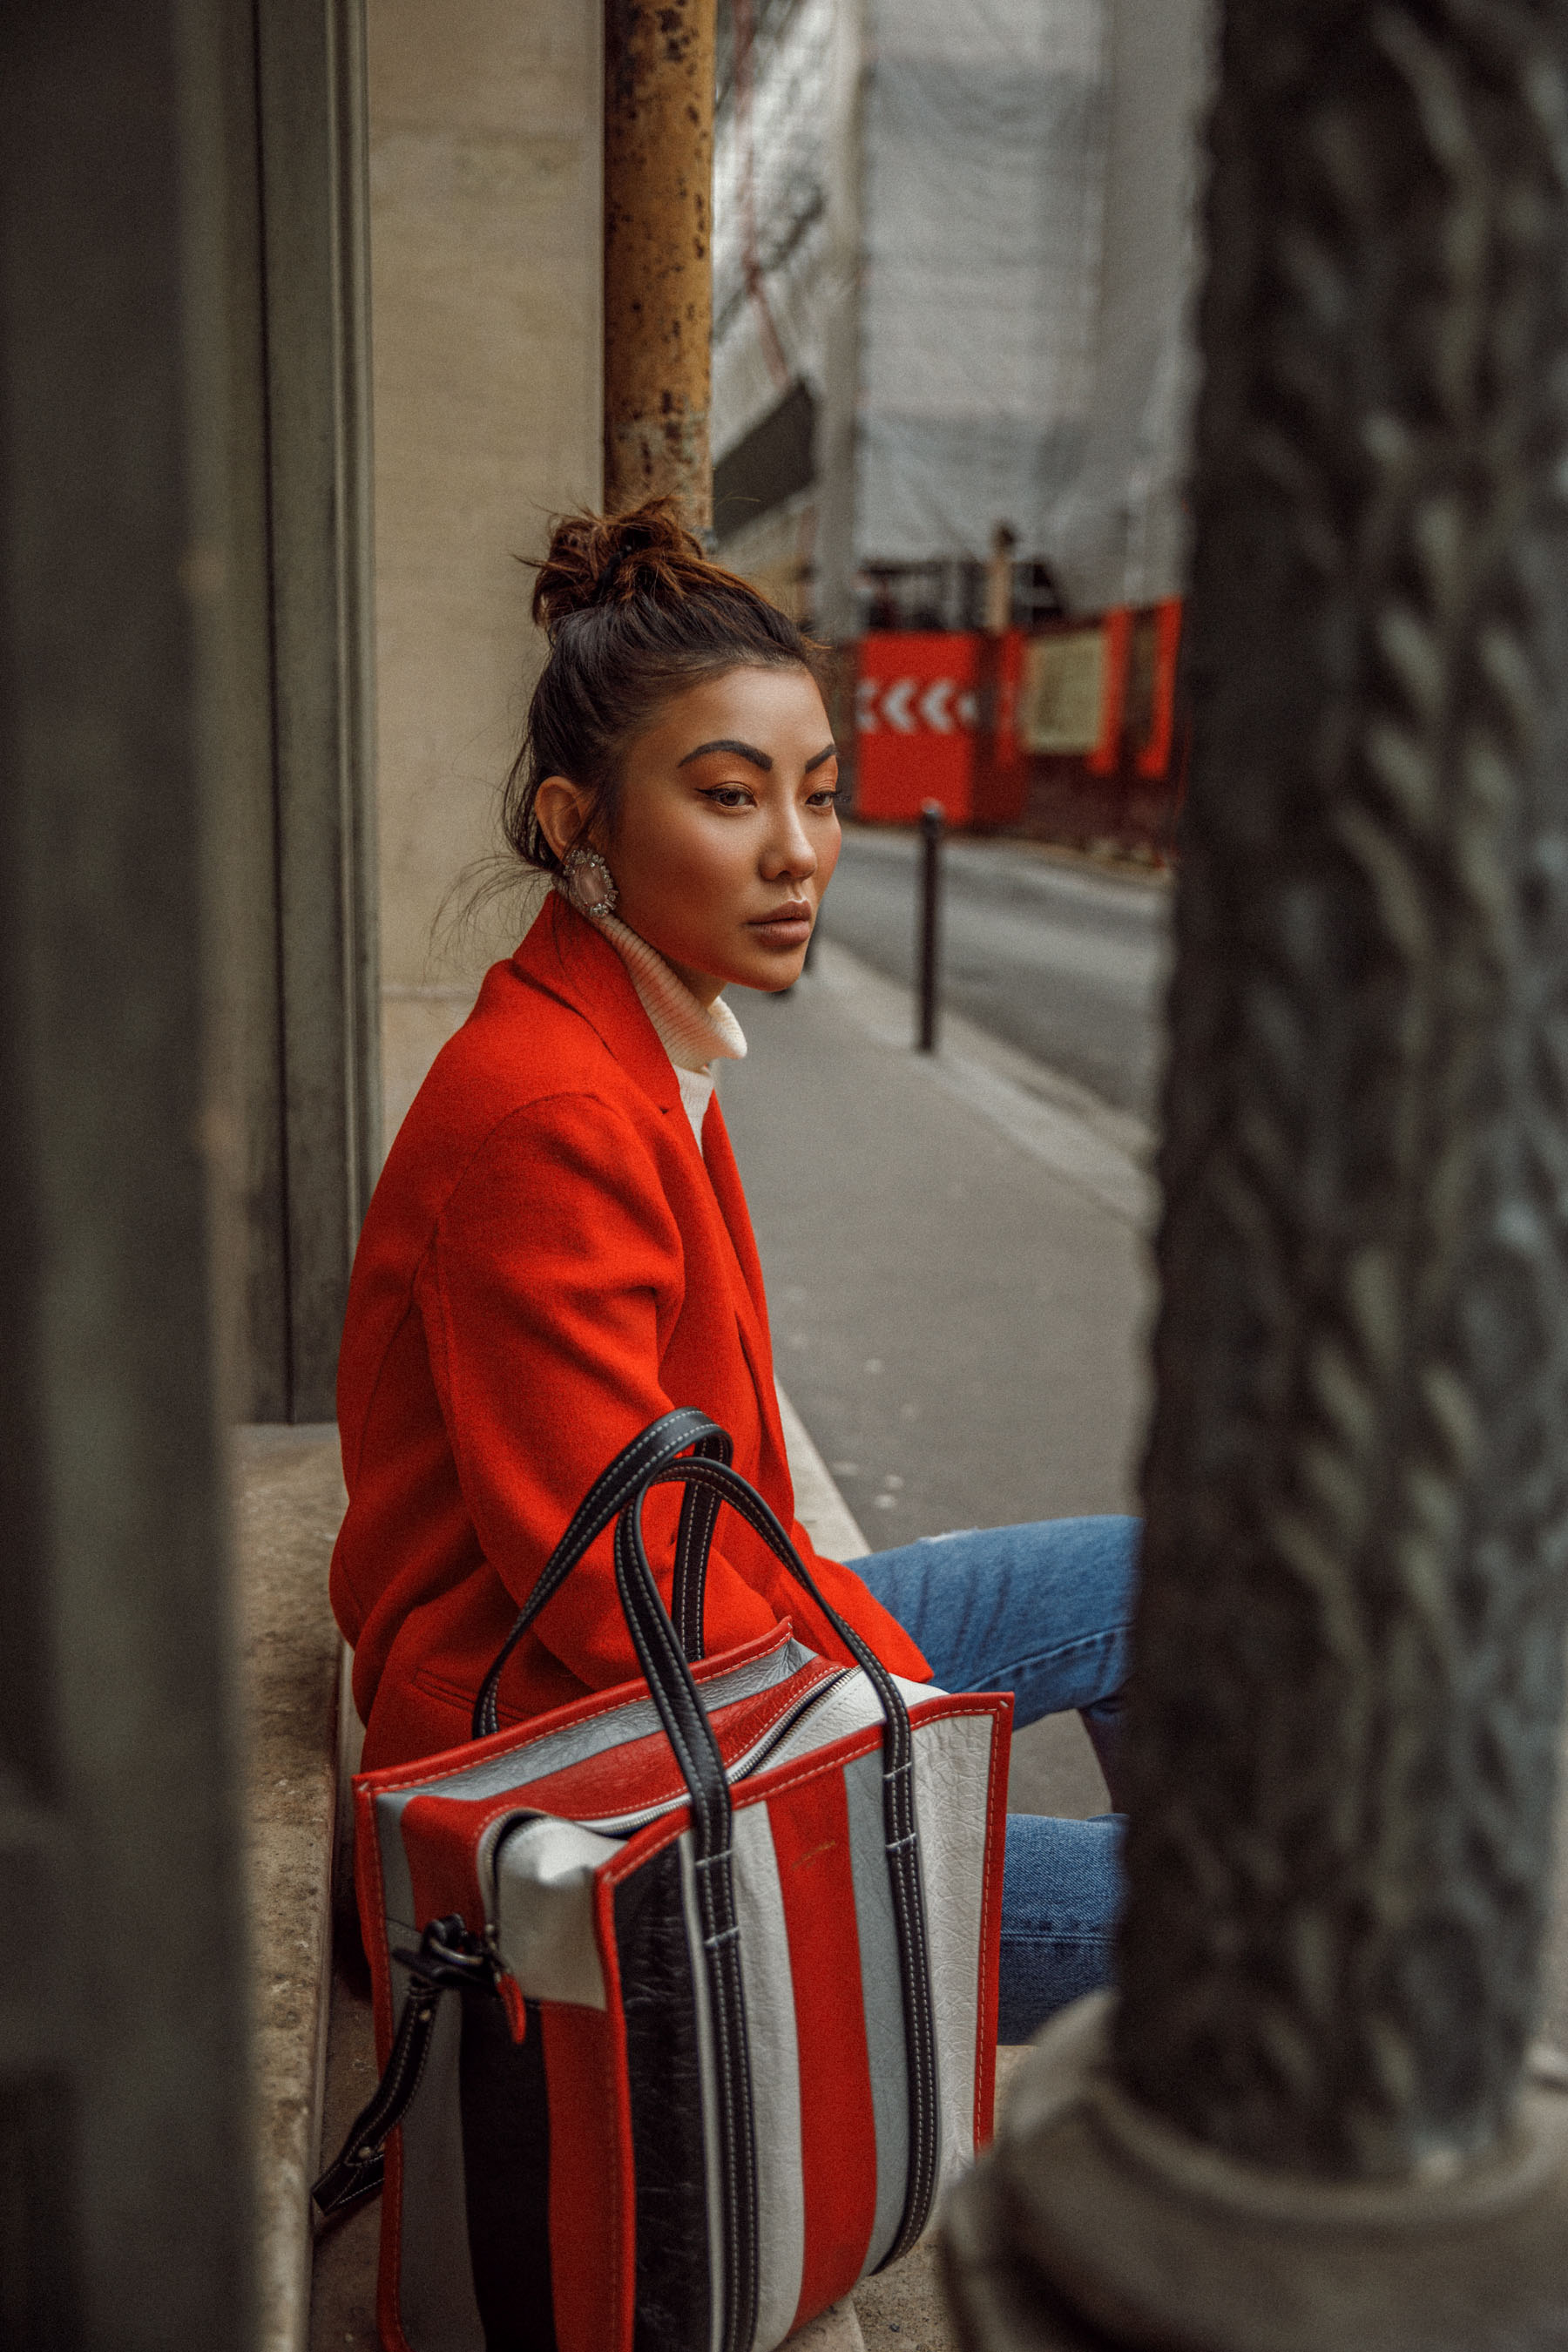 Winter Trends You Can Still Wear In Spring - Bright red coat, cuffed jeans, balenciaga bazar shopper, jessica wang in paris, pfw street style, eiffel tower photo // Notjessfashion.com